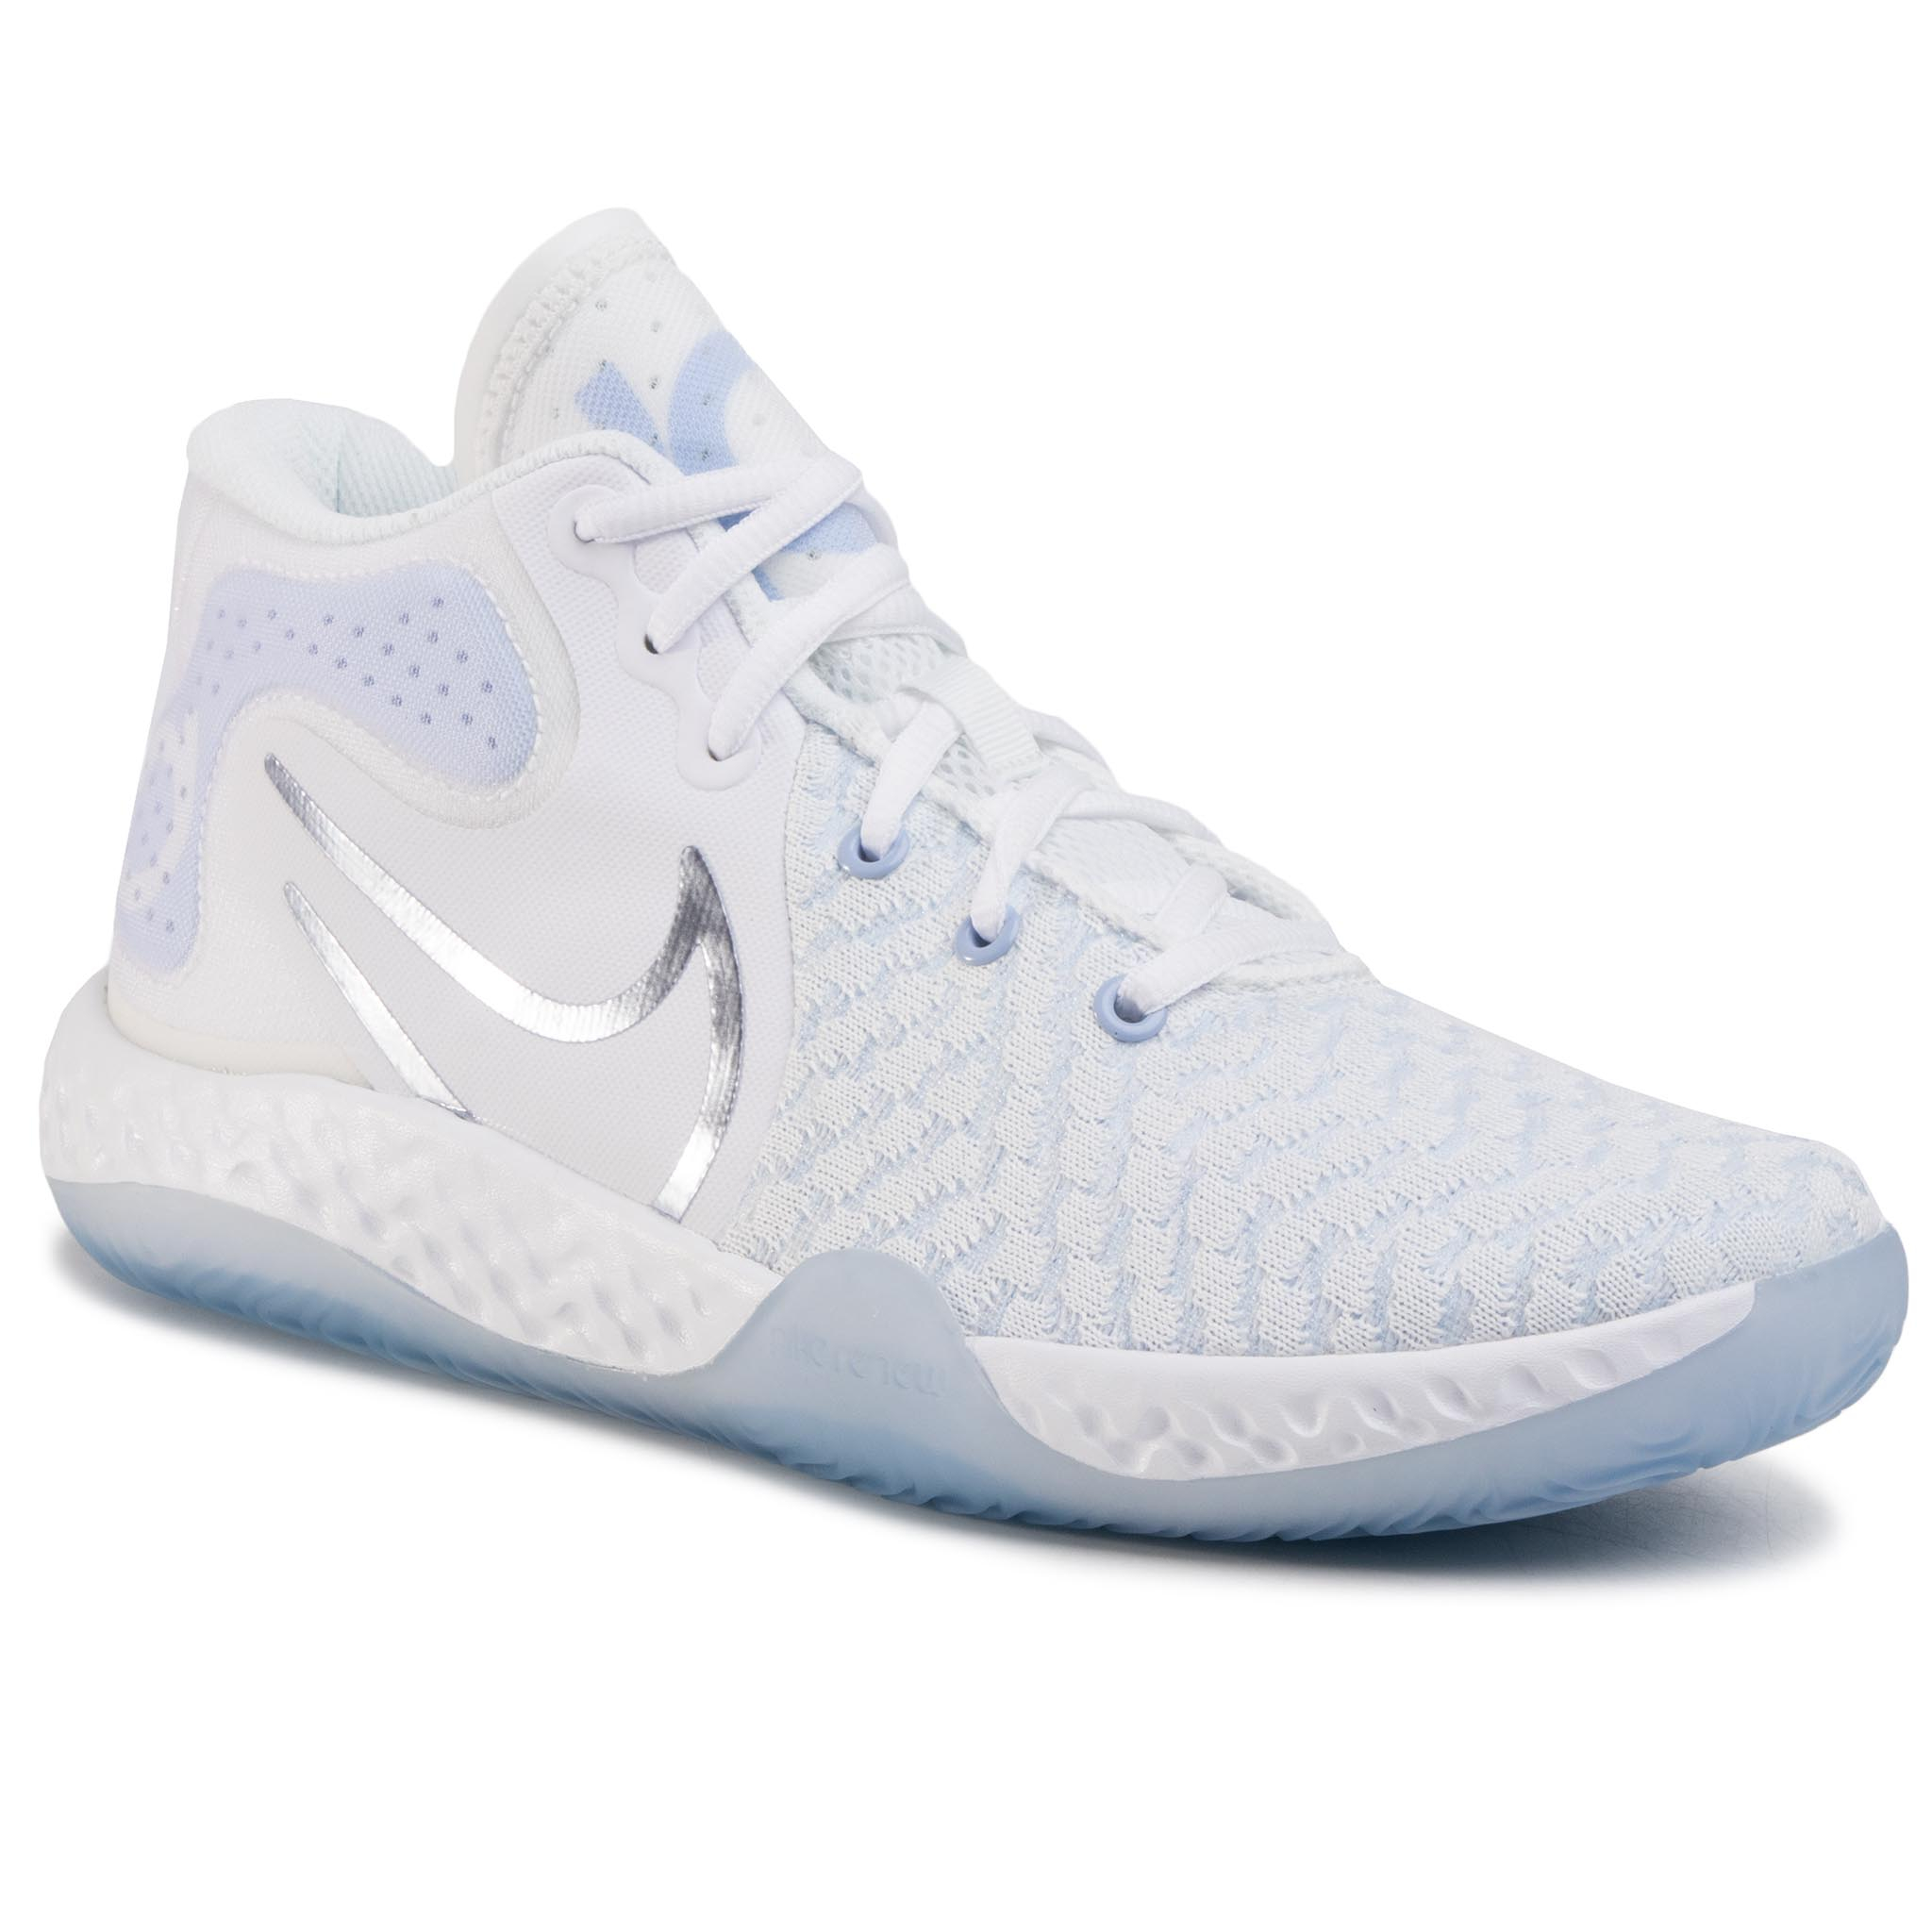 Pantofi Nike - Kd Trey 5 Viii Ck2090 100 White/Royal Tint imagine